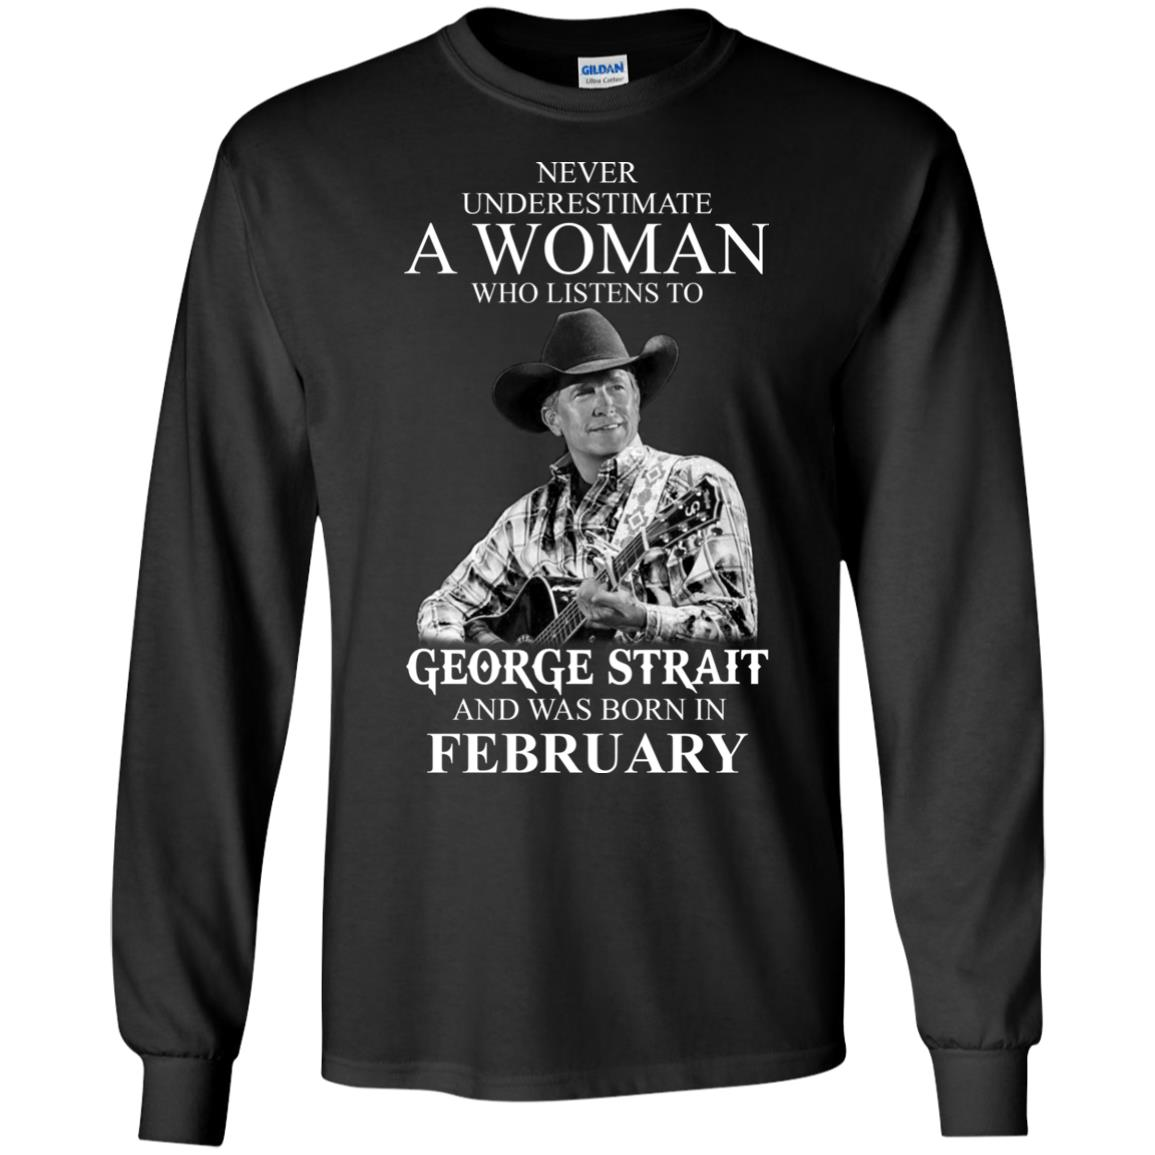 image 448 - Never Underestimate A Woman Who Listens To George Strait And Was Born In February shirt